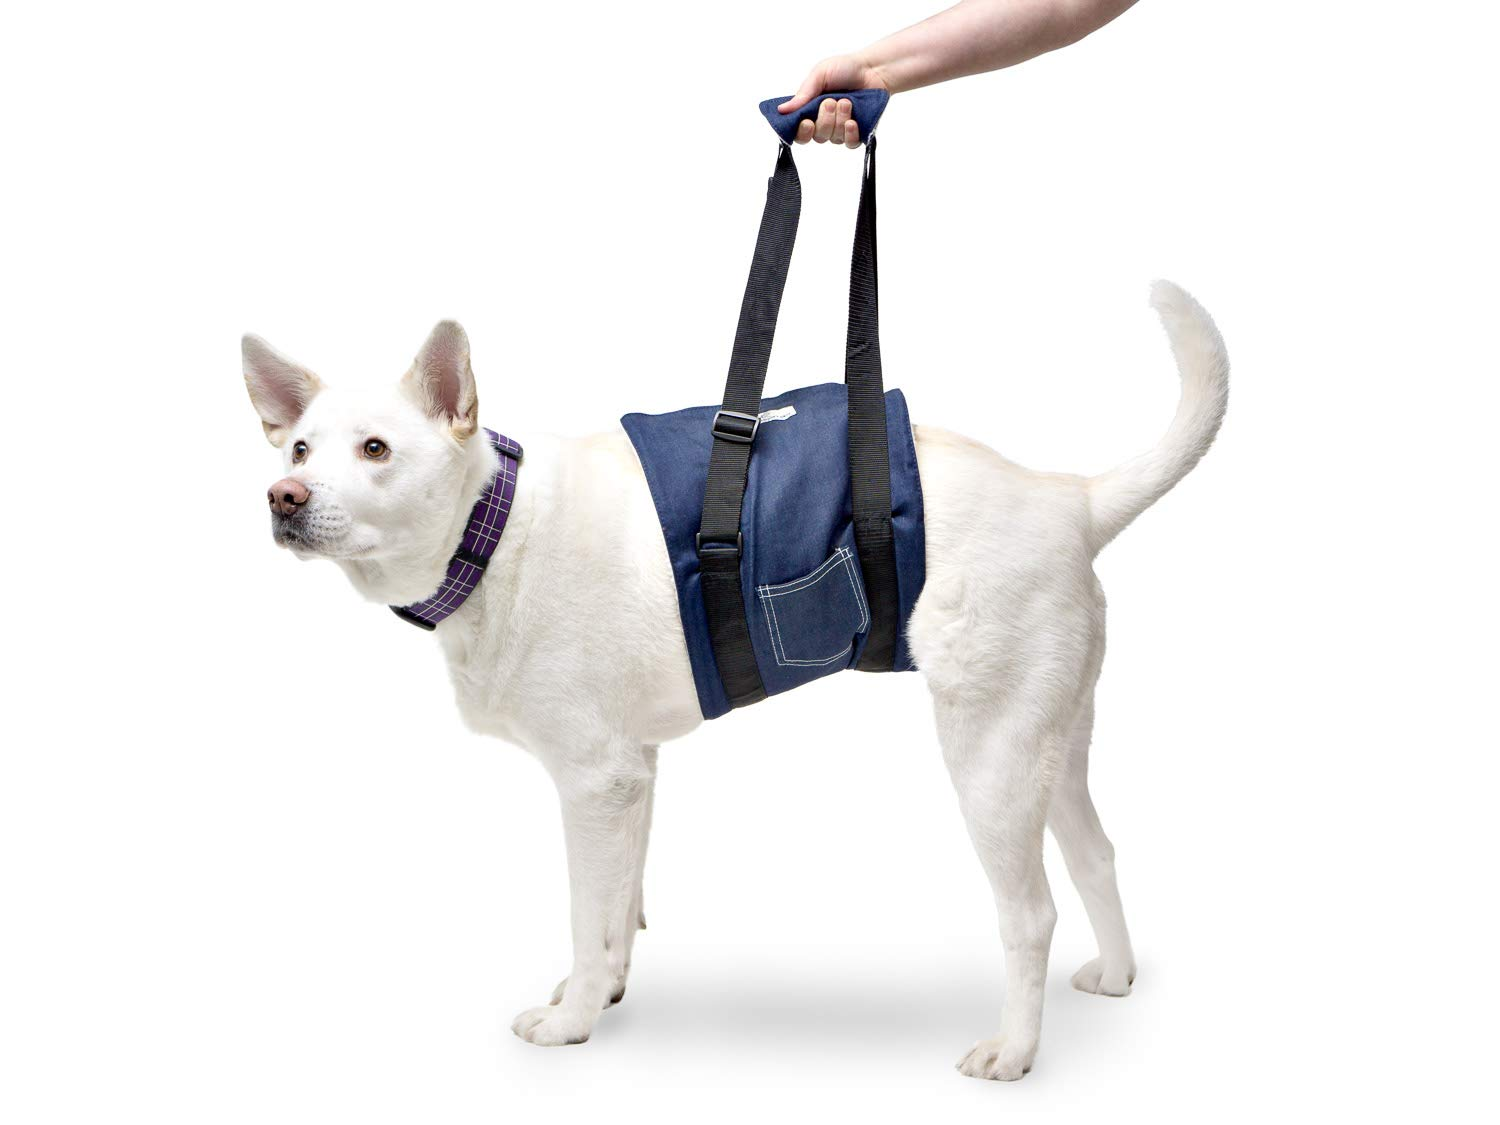 Walkin' Dog Harness Sling for the handicapped